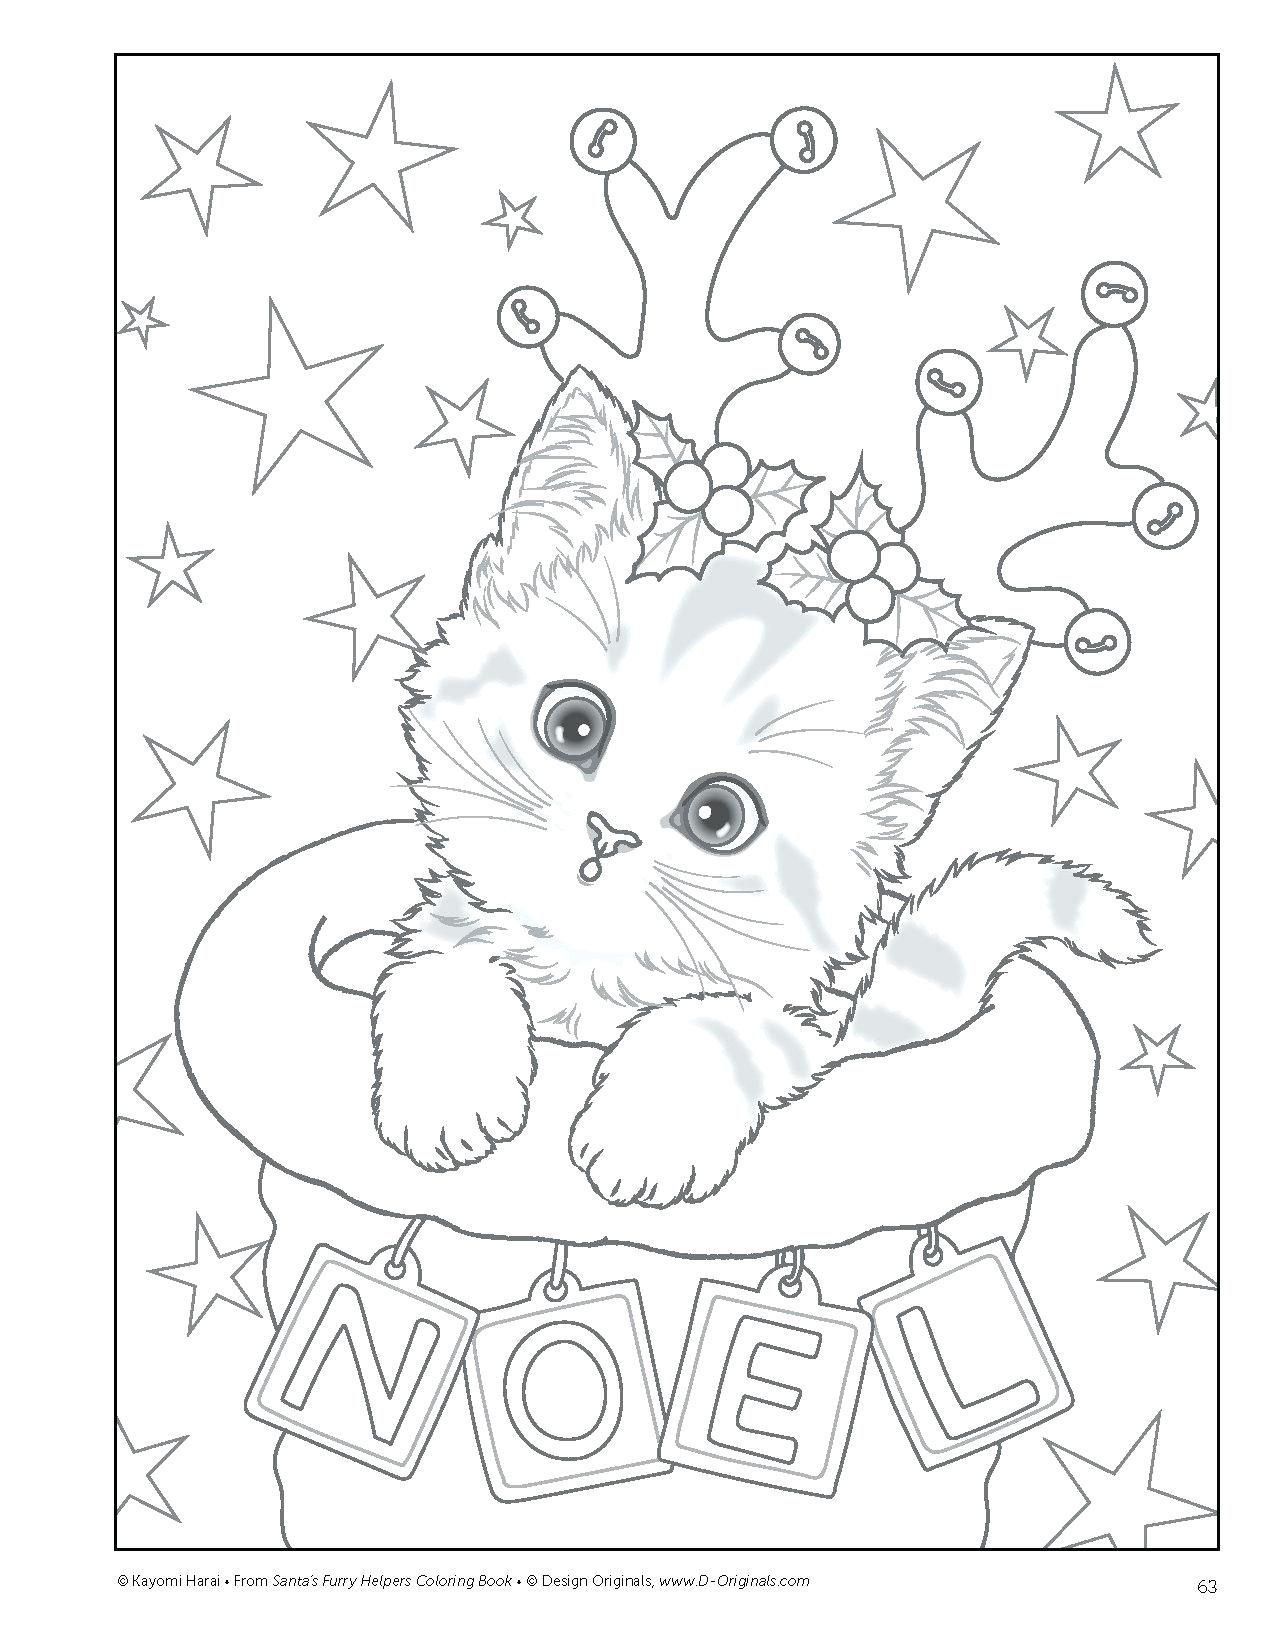 Download or print this amazing coloring page: Coloring Book